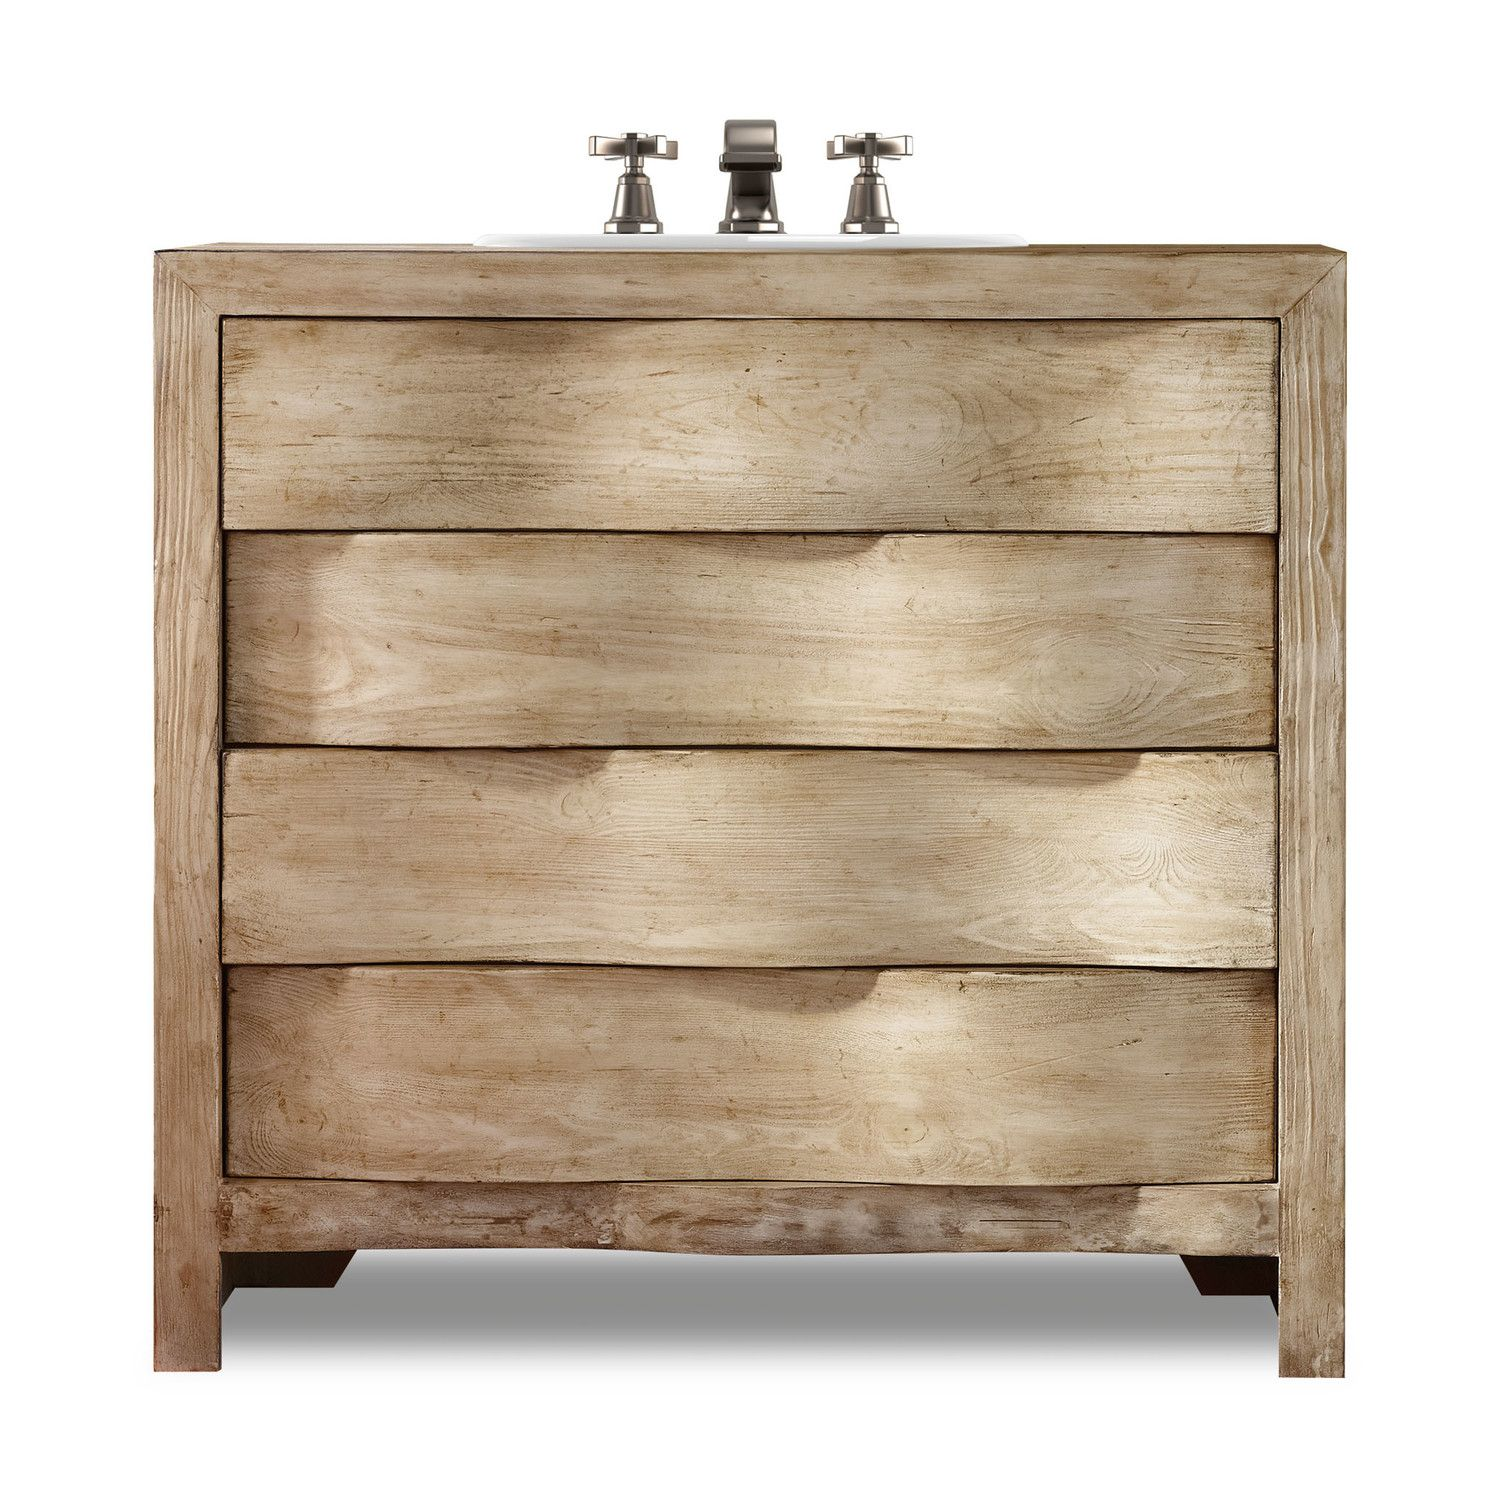 Hooker Furniture Bathroom Vanity: Tommy Bahama Style Bathroom Vanity